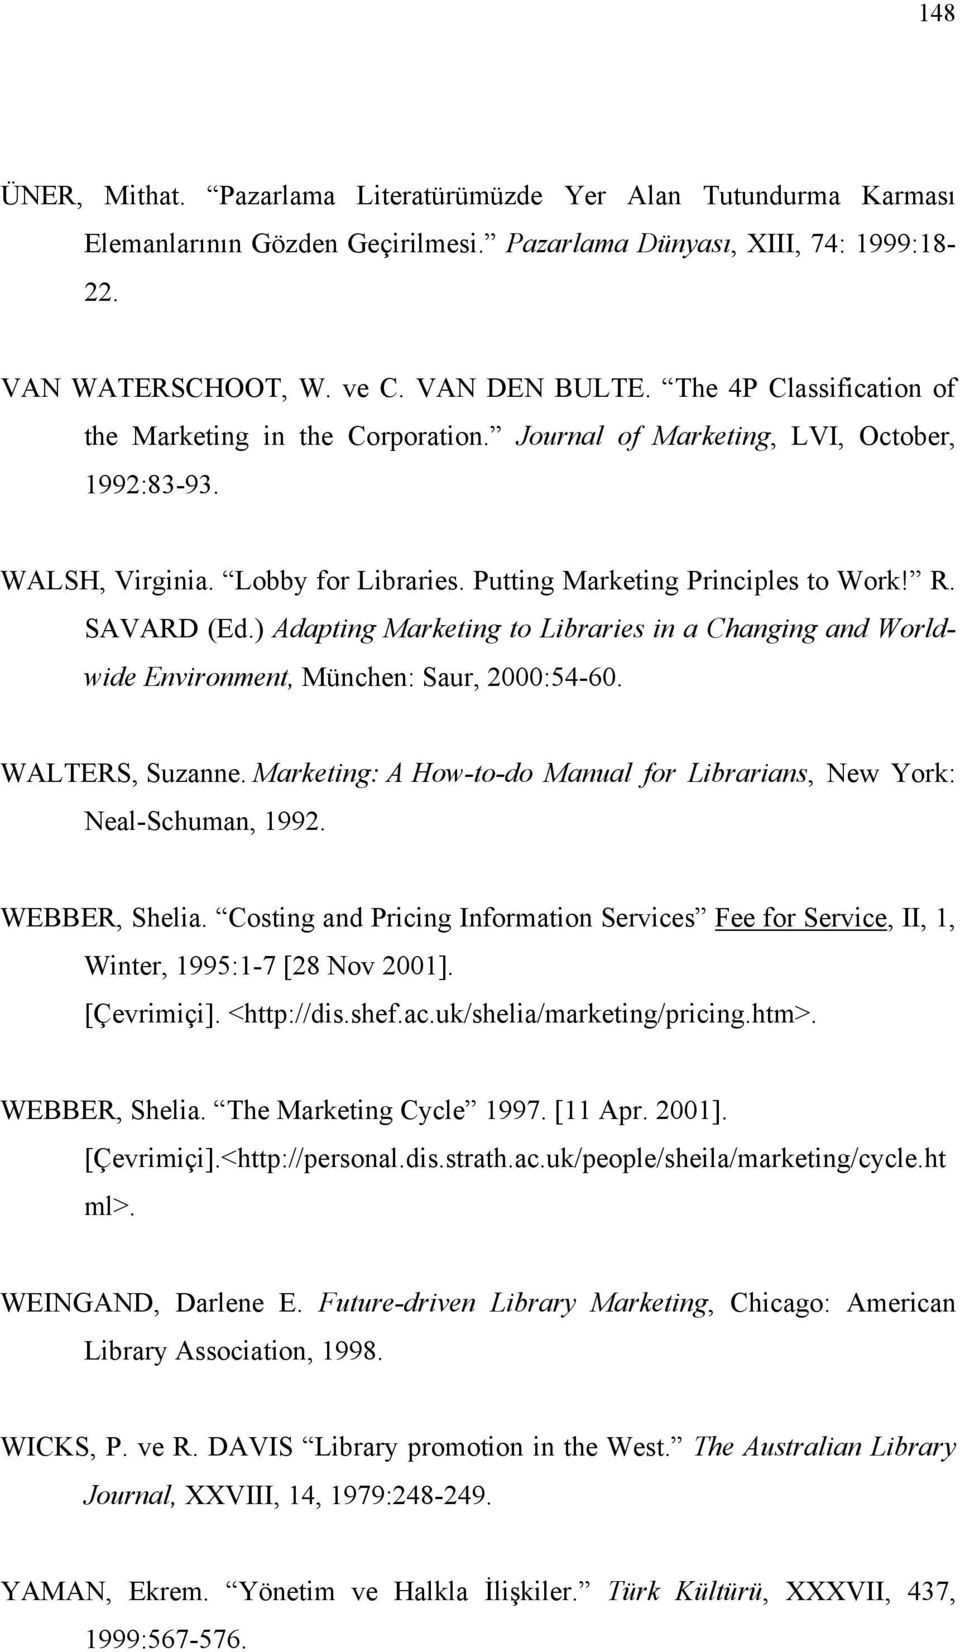 ) Adapting Marketing to Libraries in a Changing and Worldwide Environment, München: Saur, 2000:54-60. WALTERS, Suzanne. Marketing: A How-to-do Manual for Librarians, New York: Neal-Schuman, 1992.